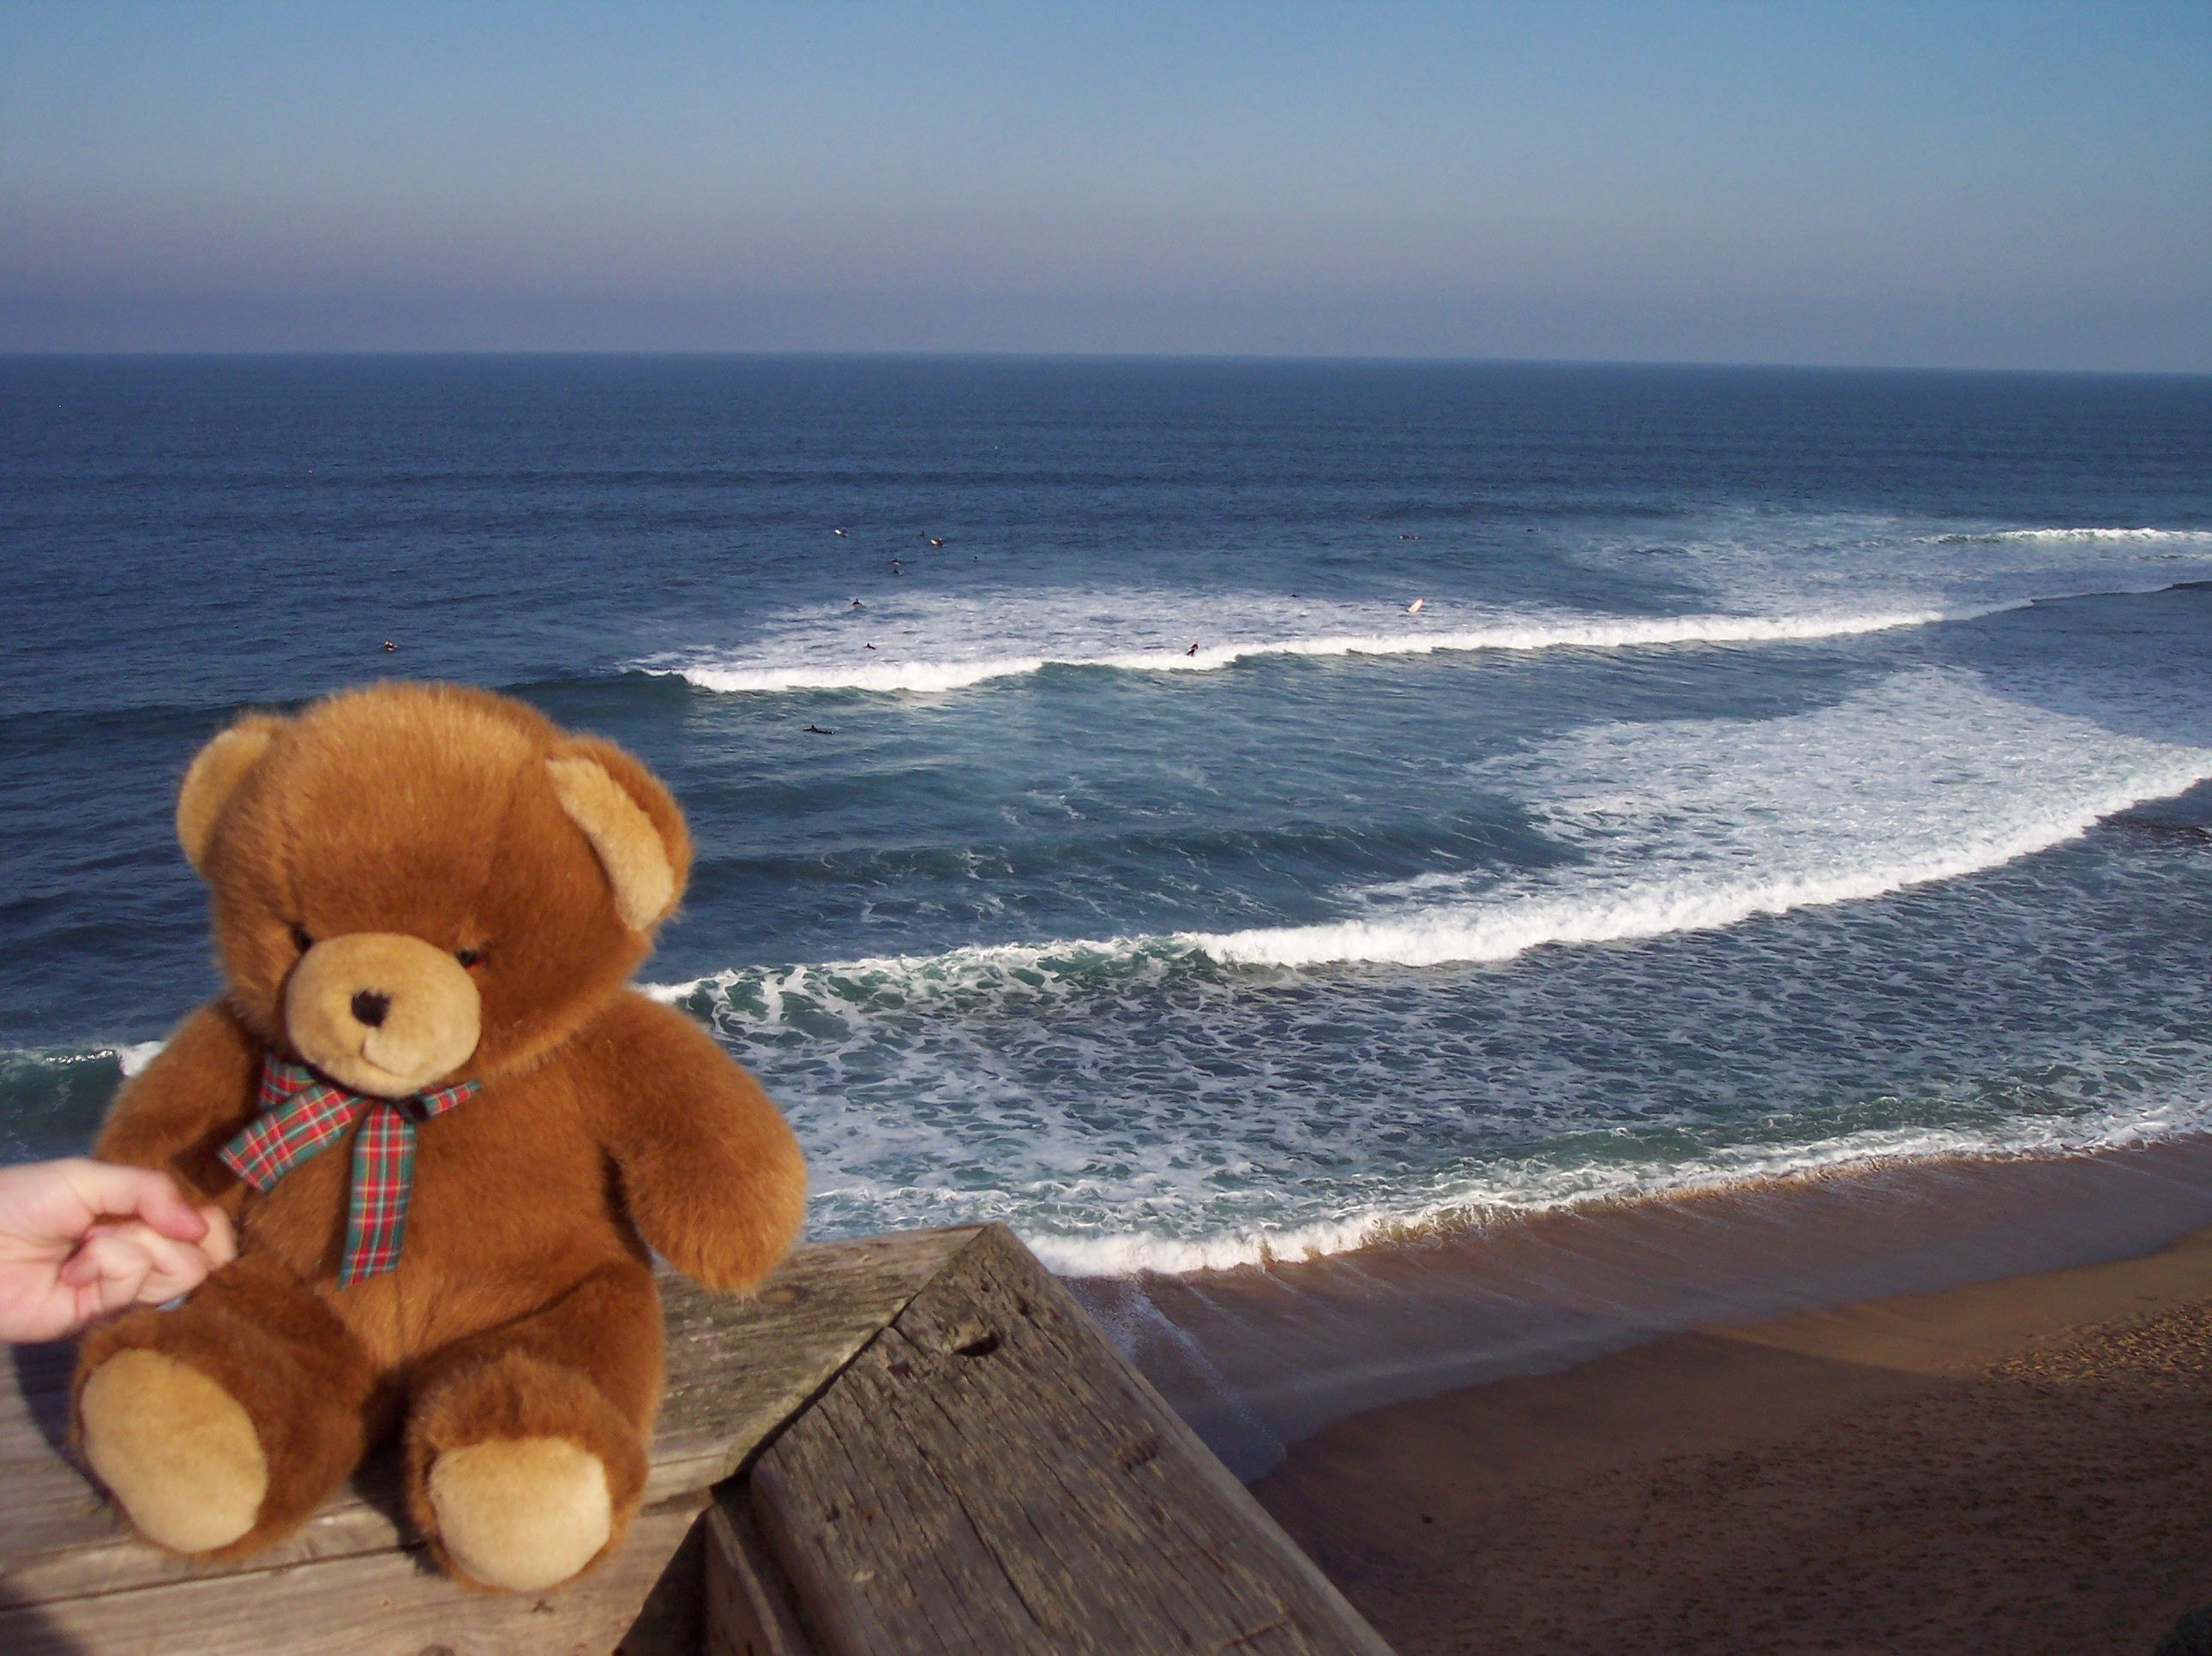 At Bells Beach. Famous for the surfing. www.marlystravels.com